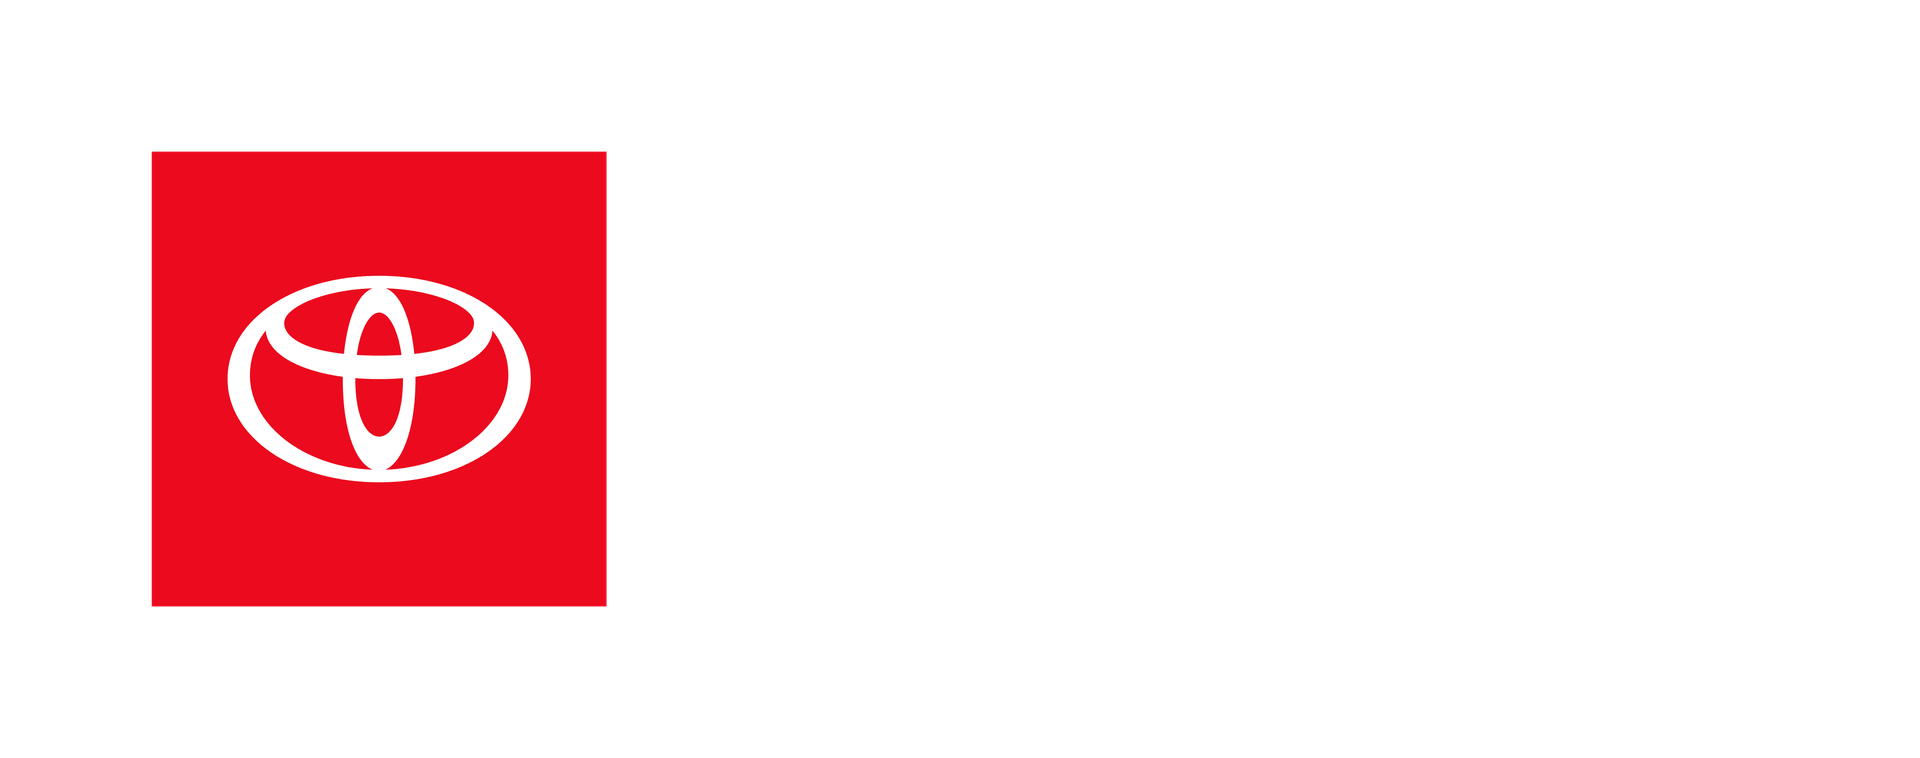 Certified Used Vehicle